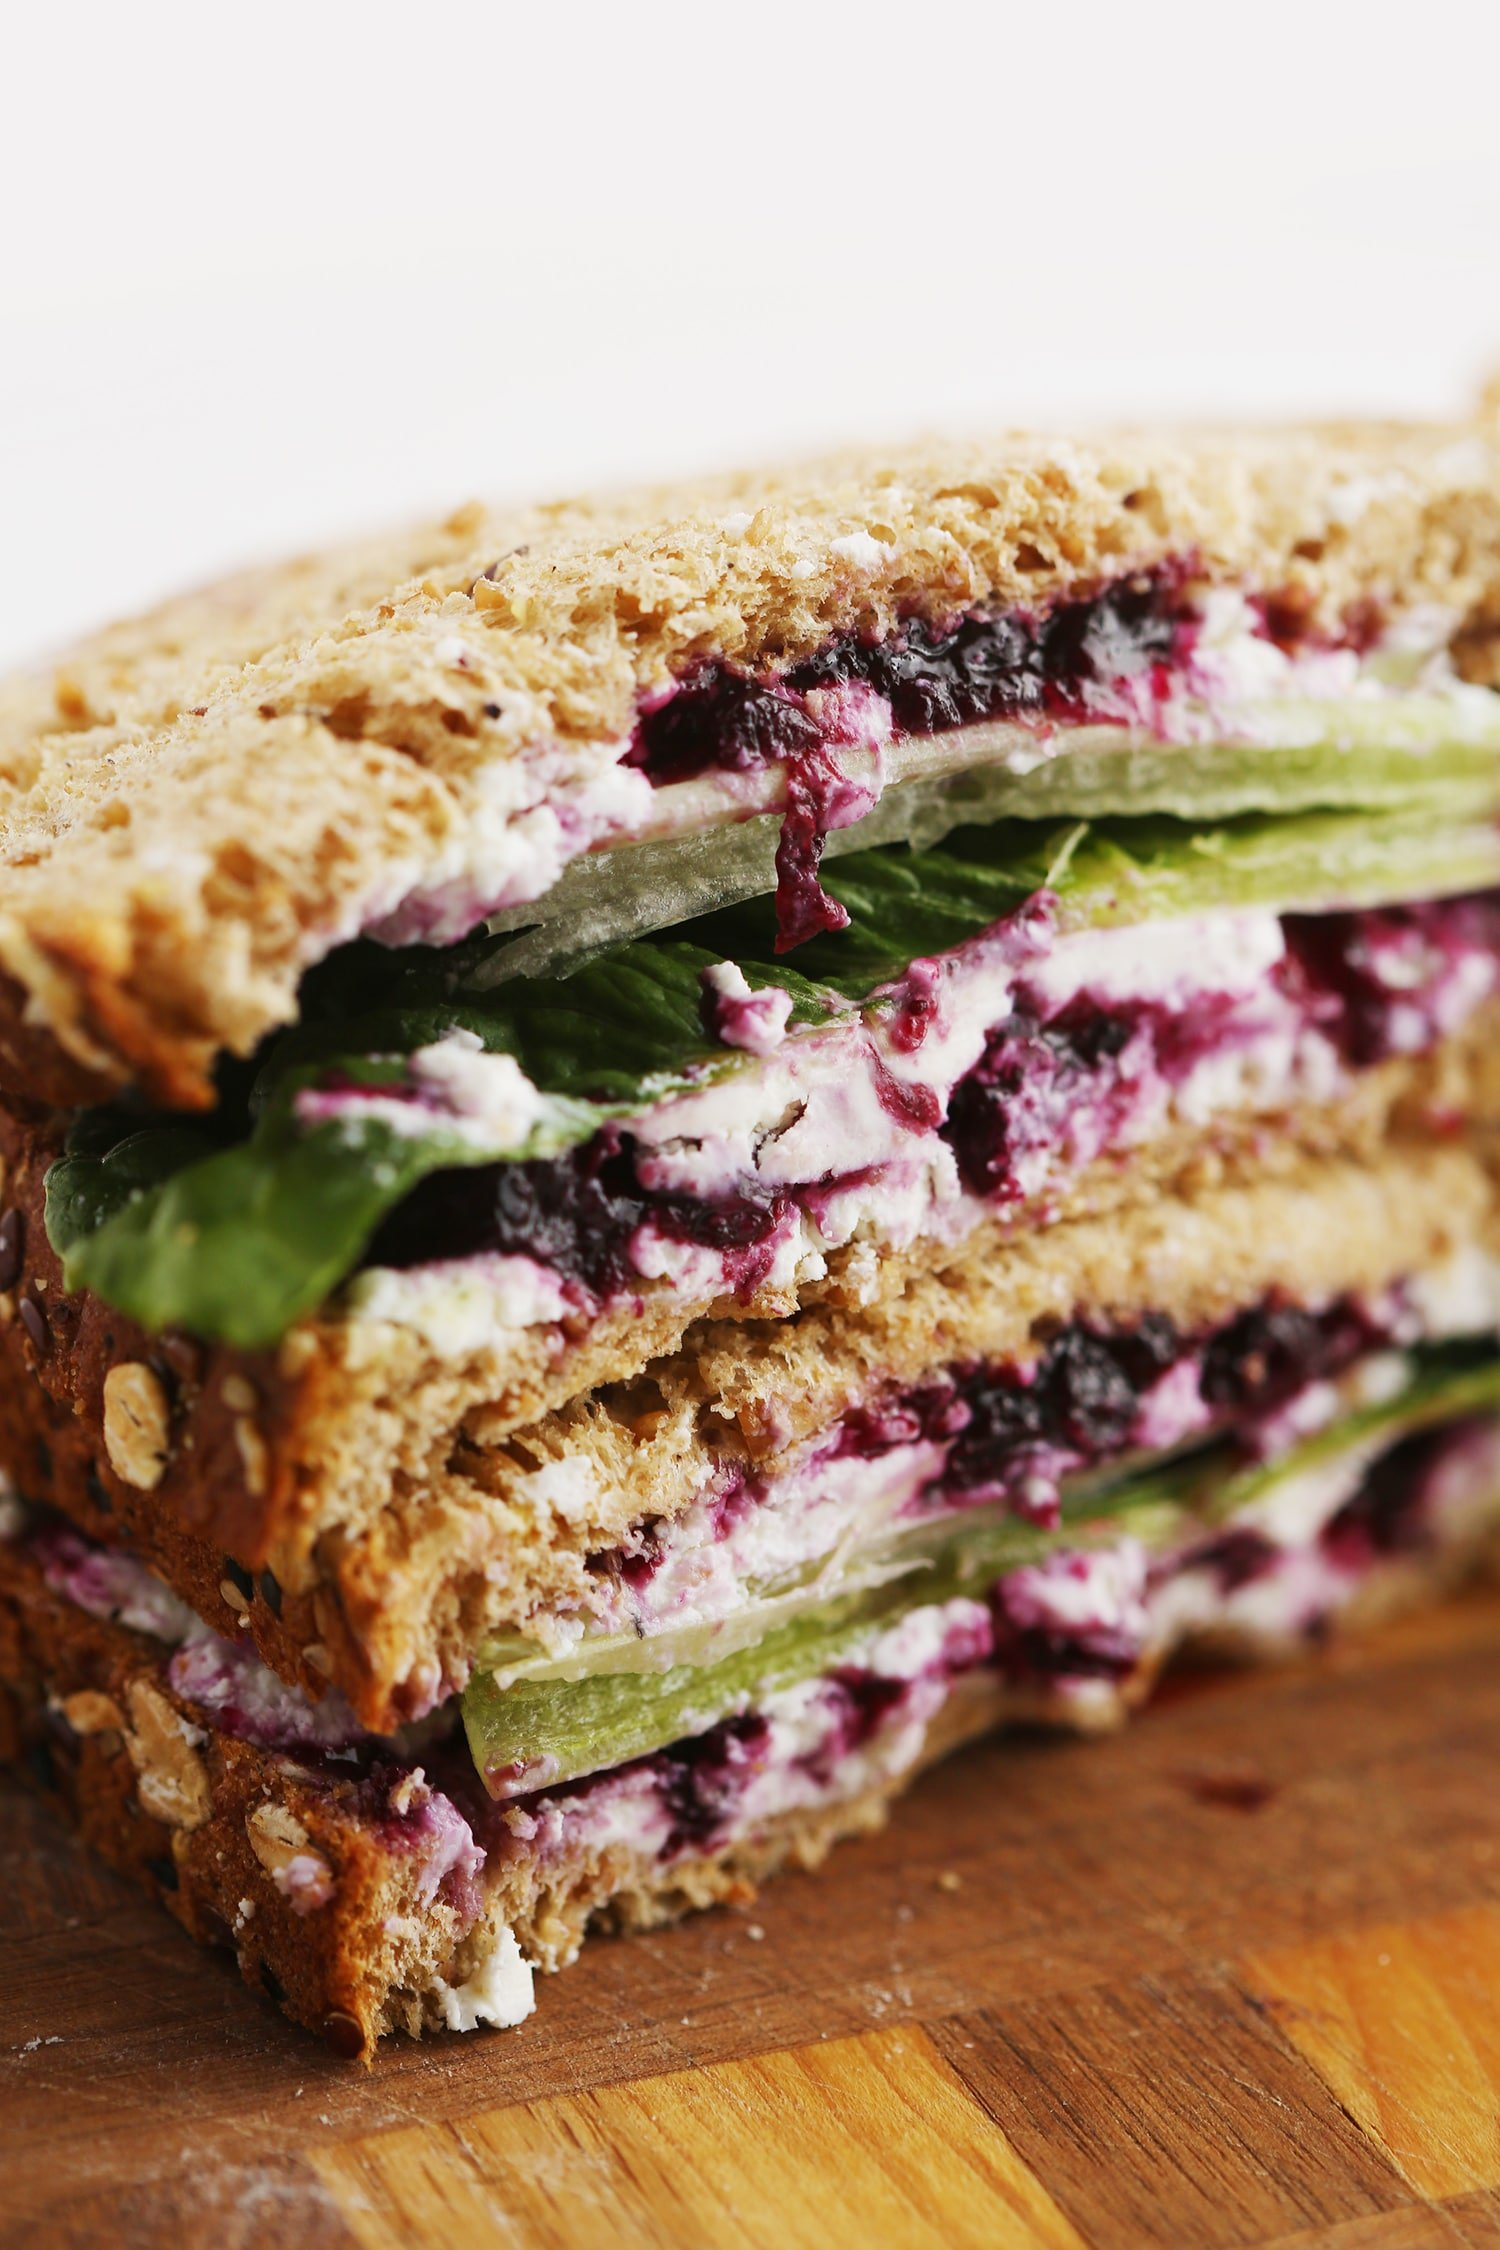 Goat Cheese Sandwich with Wild Blueberry Jam served on a wooden board